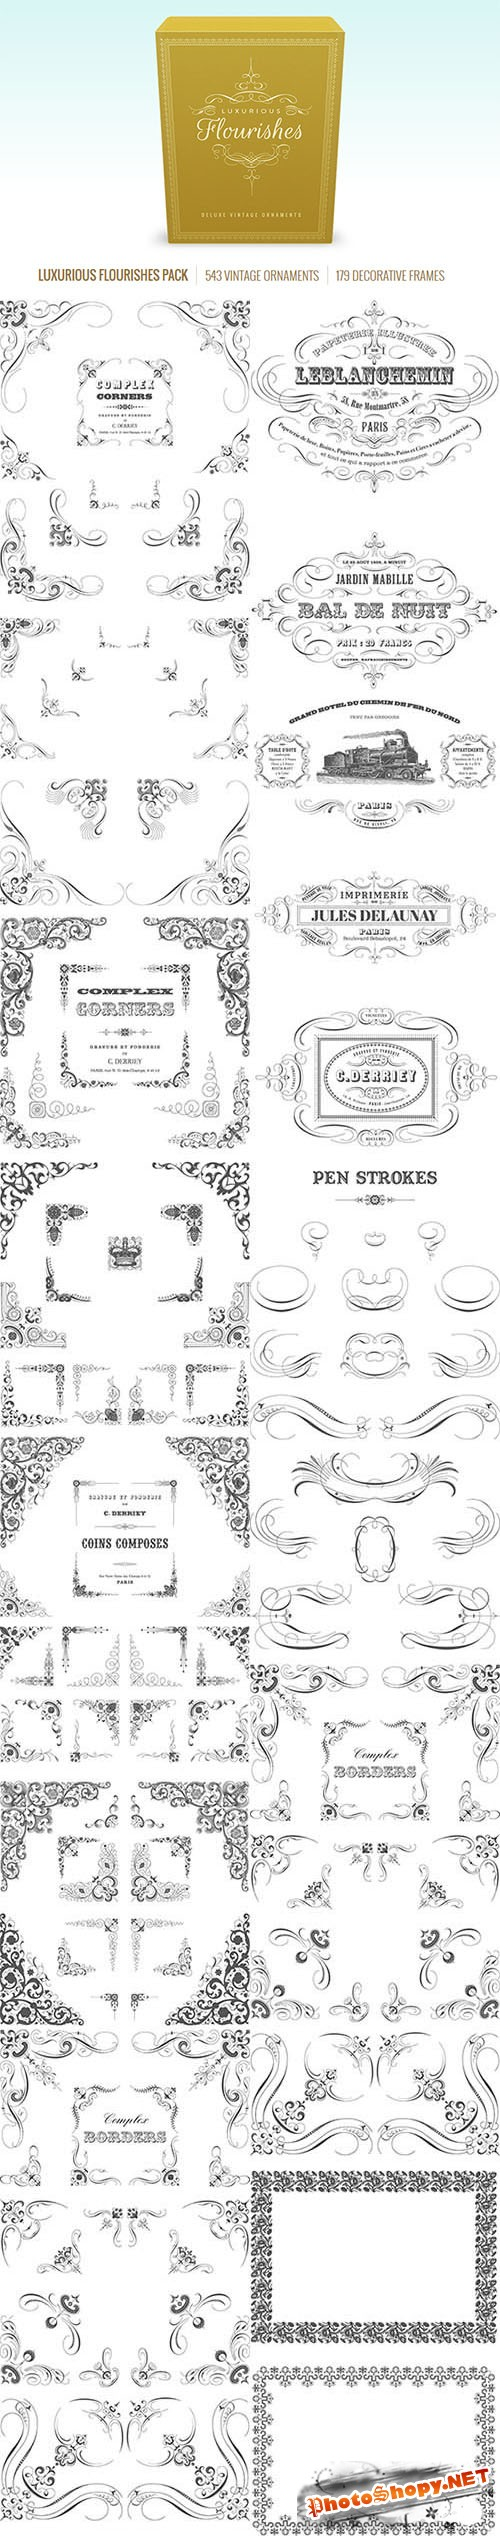 Luxurious Flourishes Pack - Vectorian Vector Elements